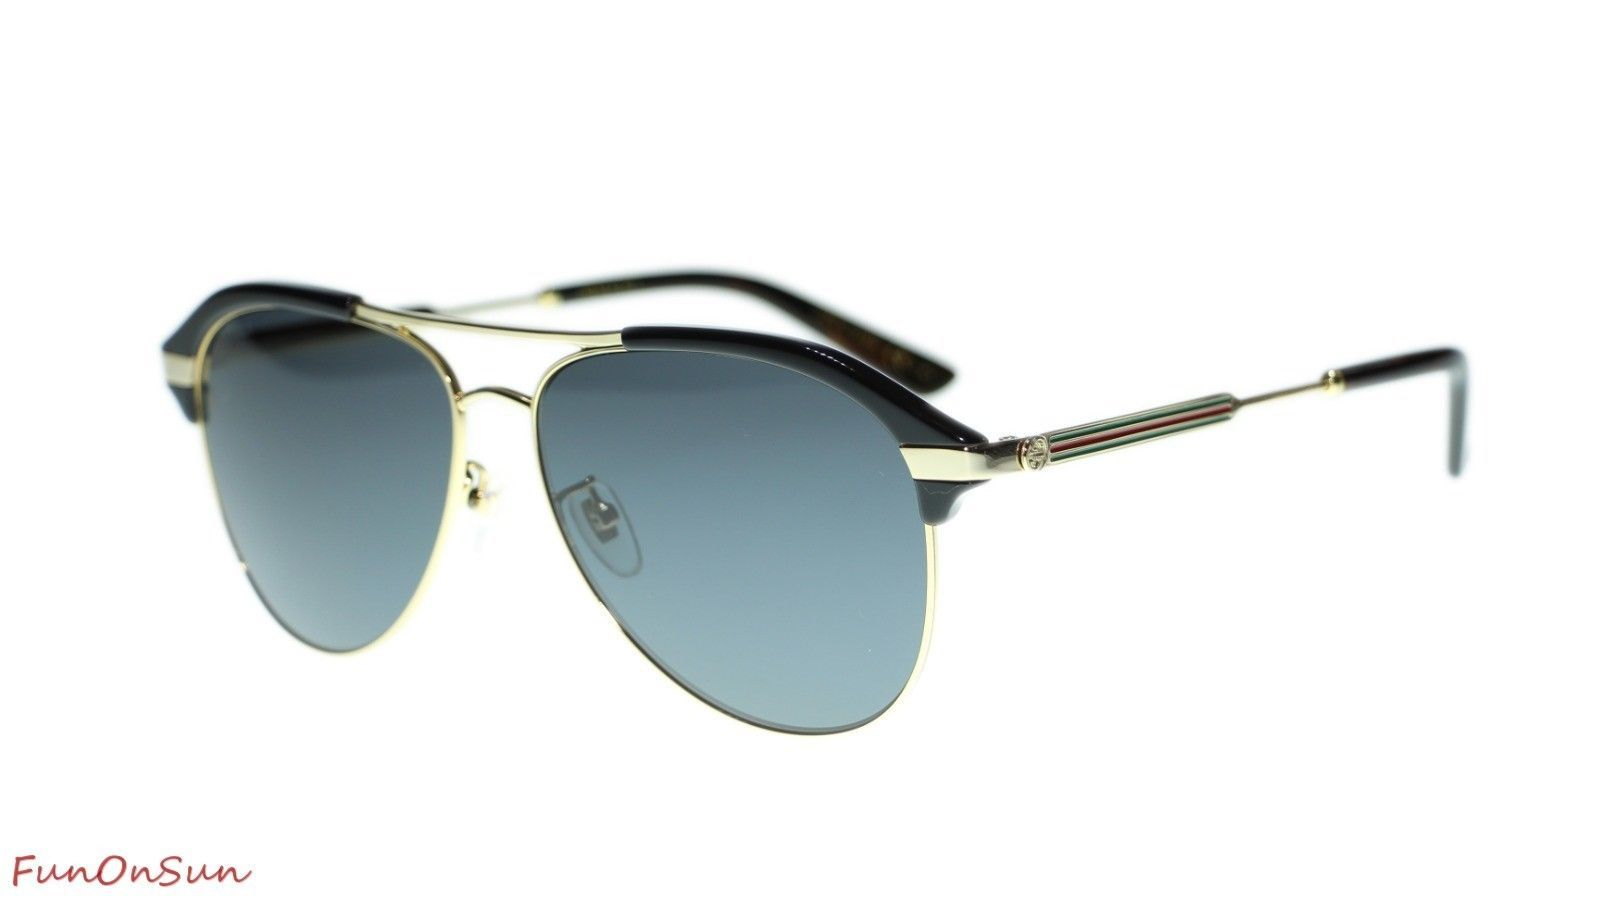 1f66e6f0914 10. 10. Previous. Gucci Men Sunglasses GG0288SA 001 Black Gold Grey Lens  Aviator 60mm Authentic